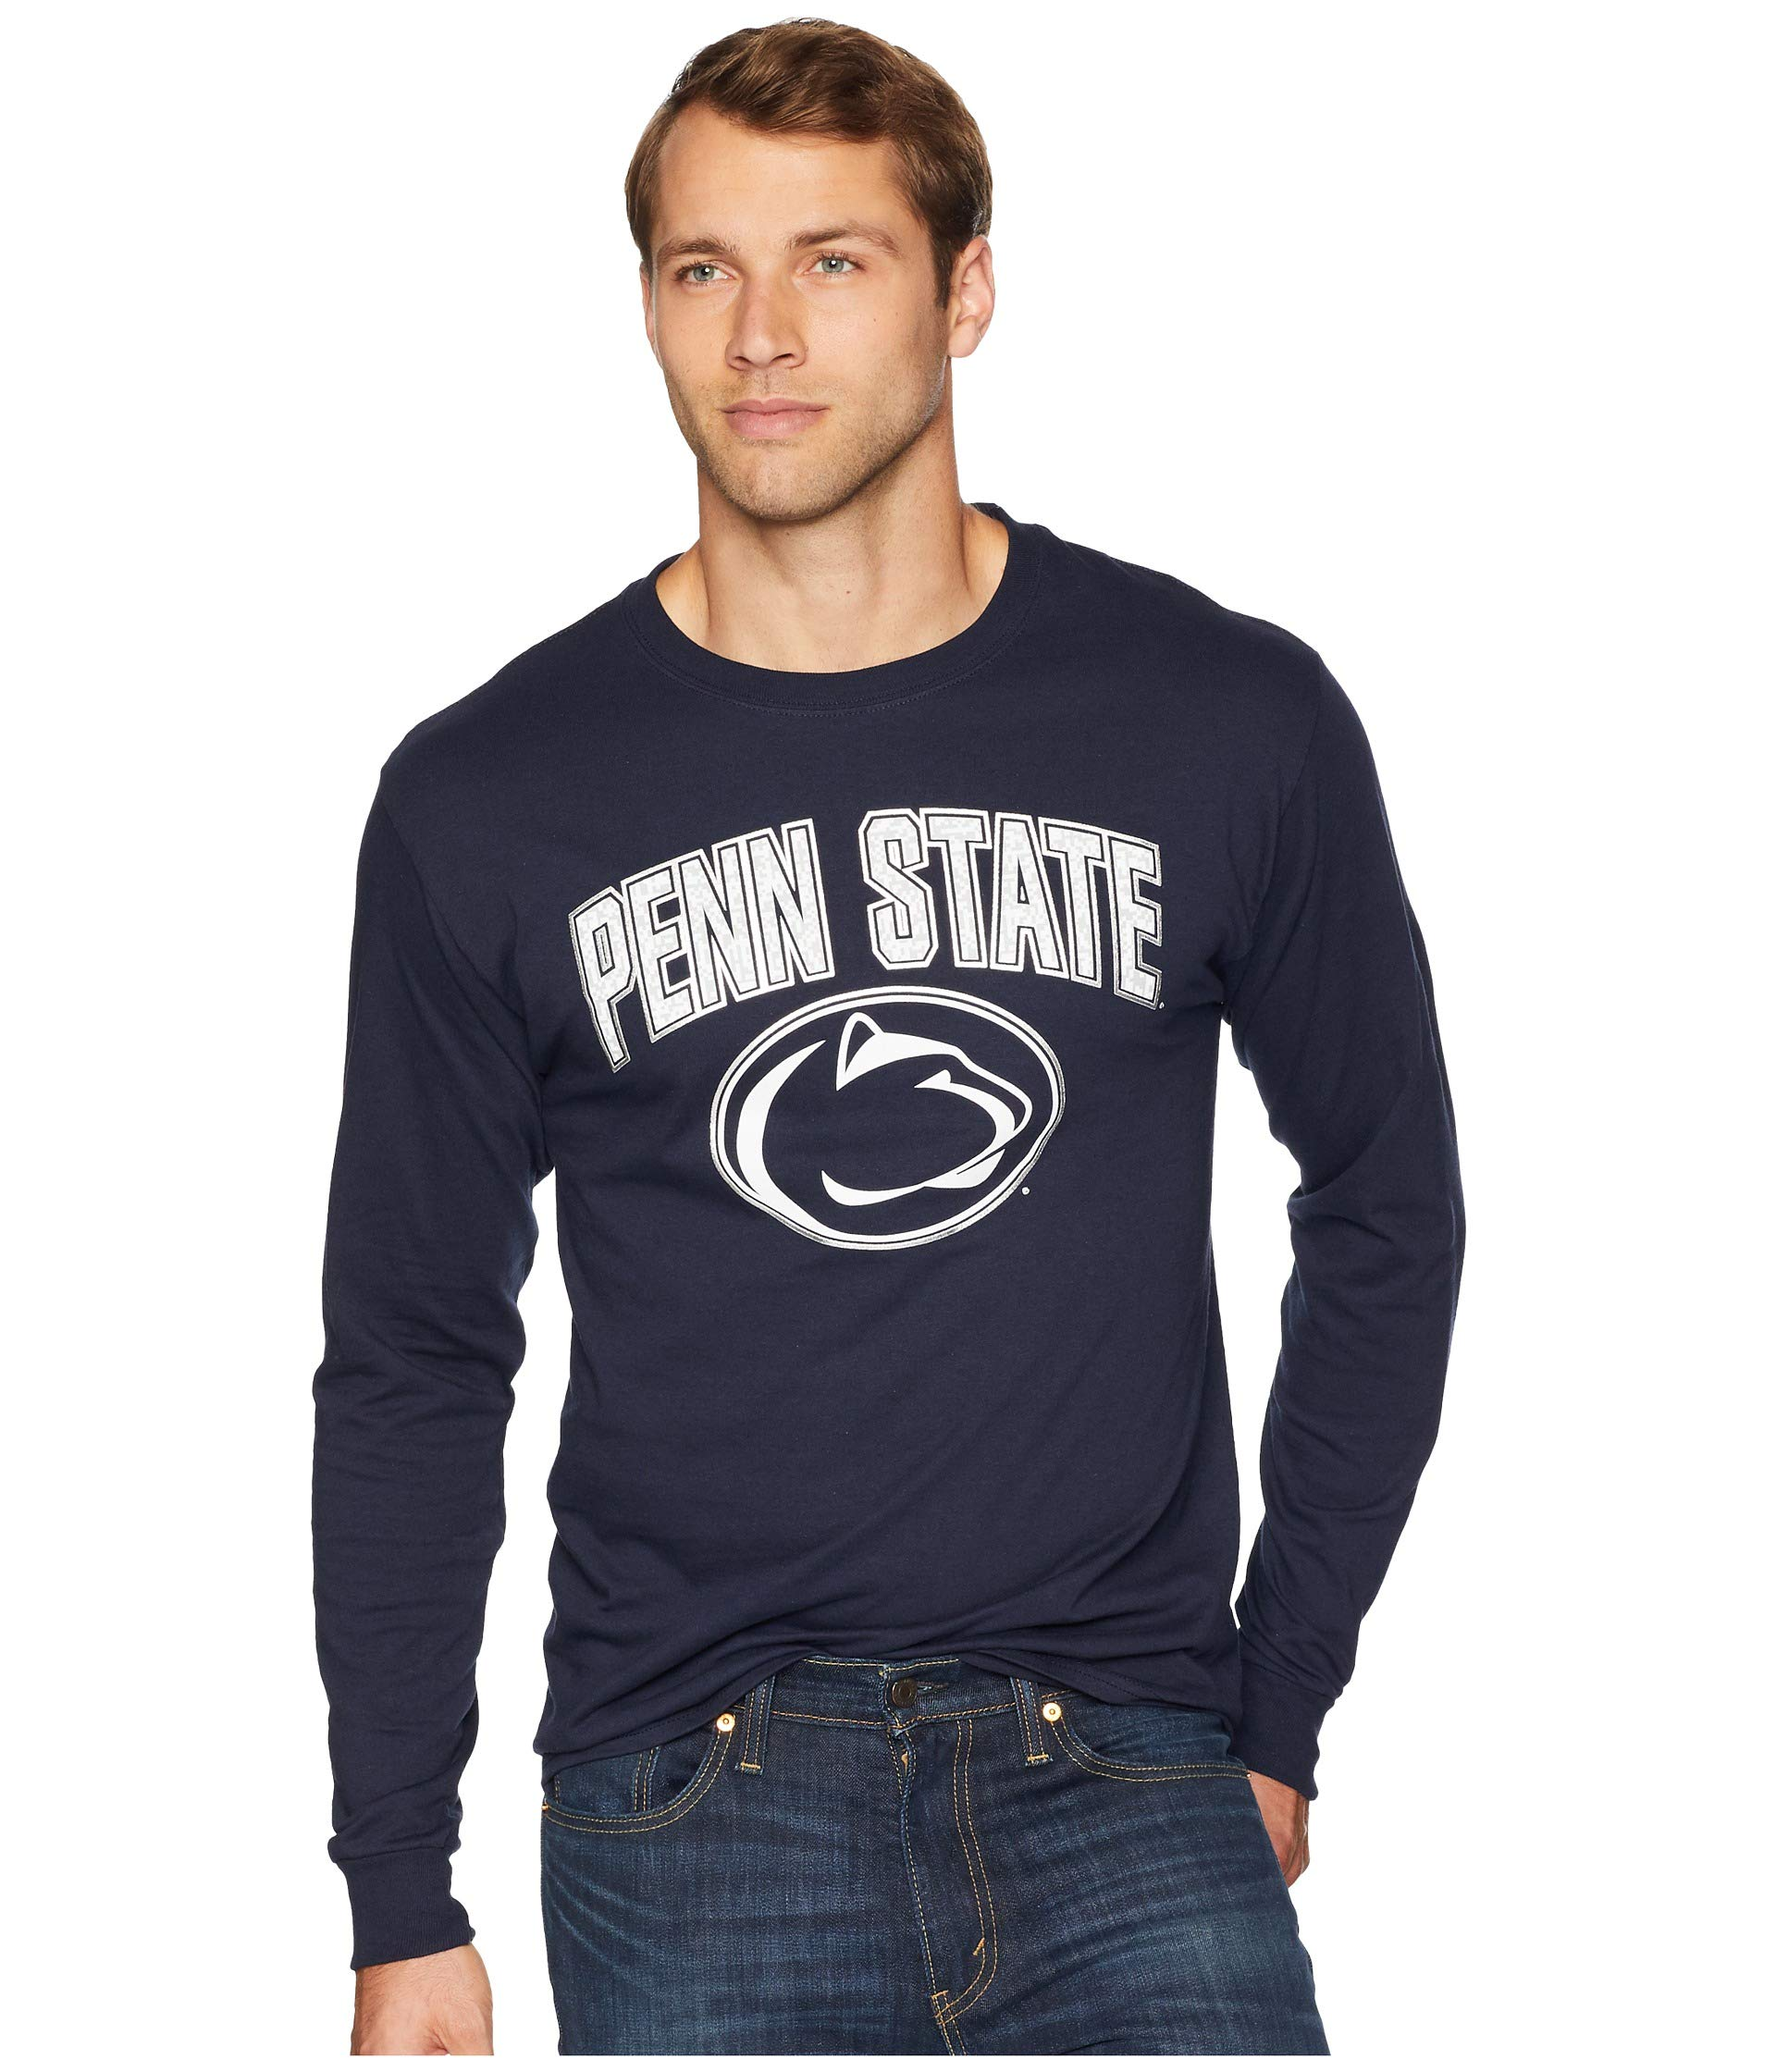 Champion Lions Sleeve College Tee Navy Penn Jersey Long State Nittany wrrRIq